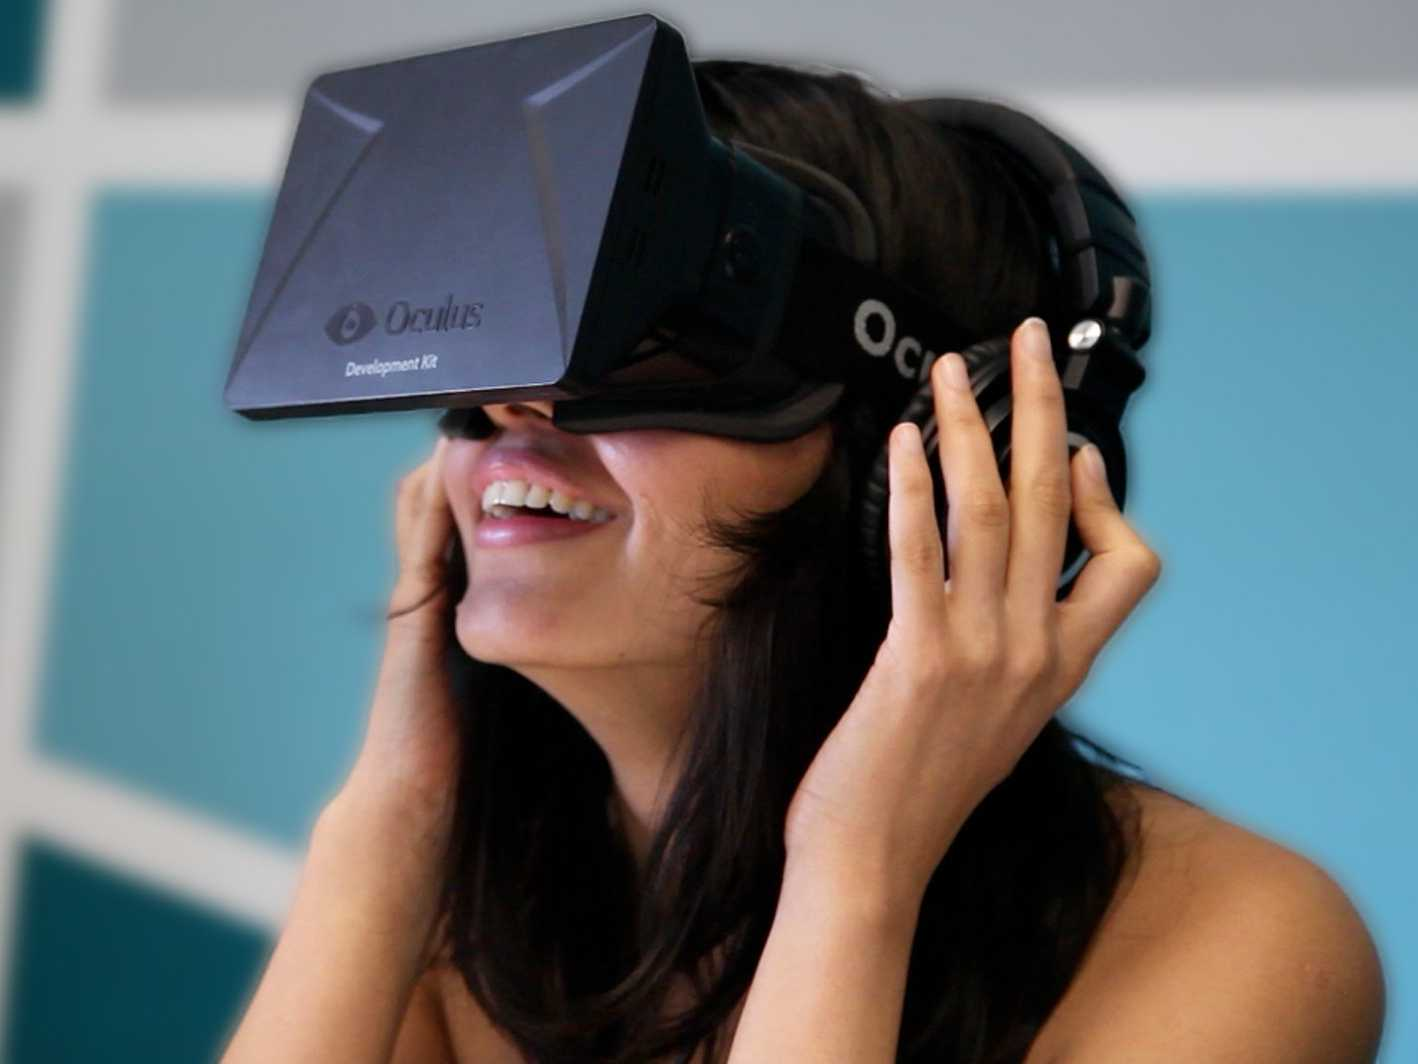 The Oculus Rift brings new questions about product liability.